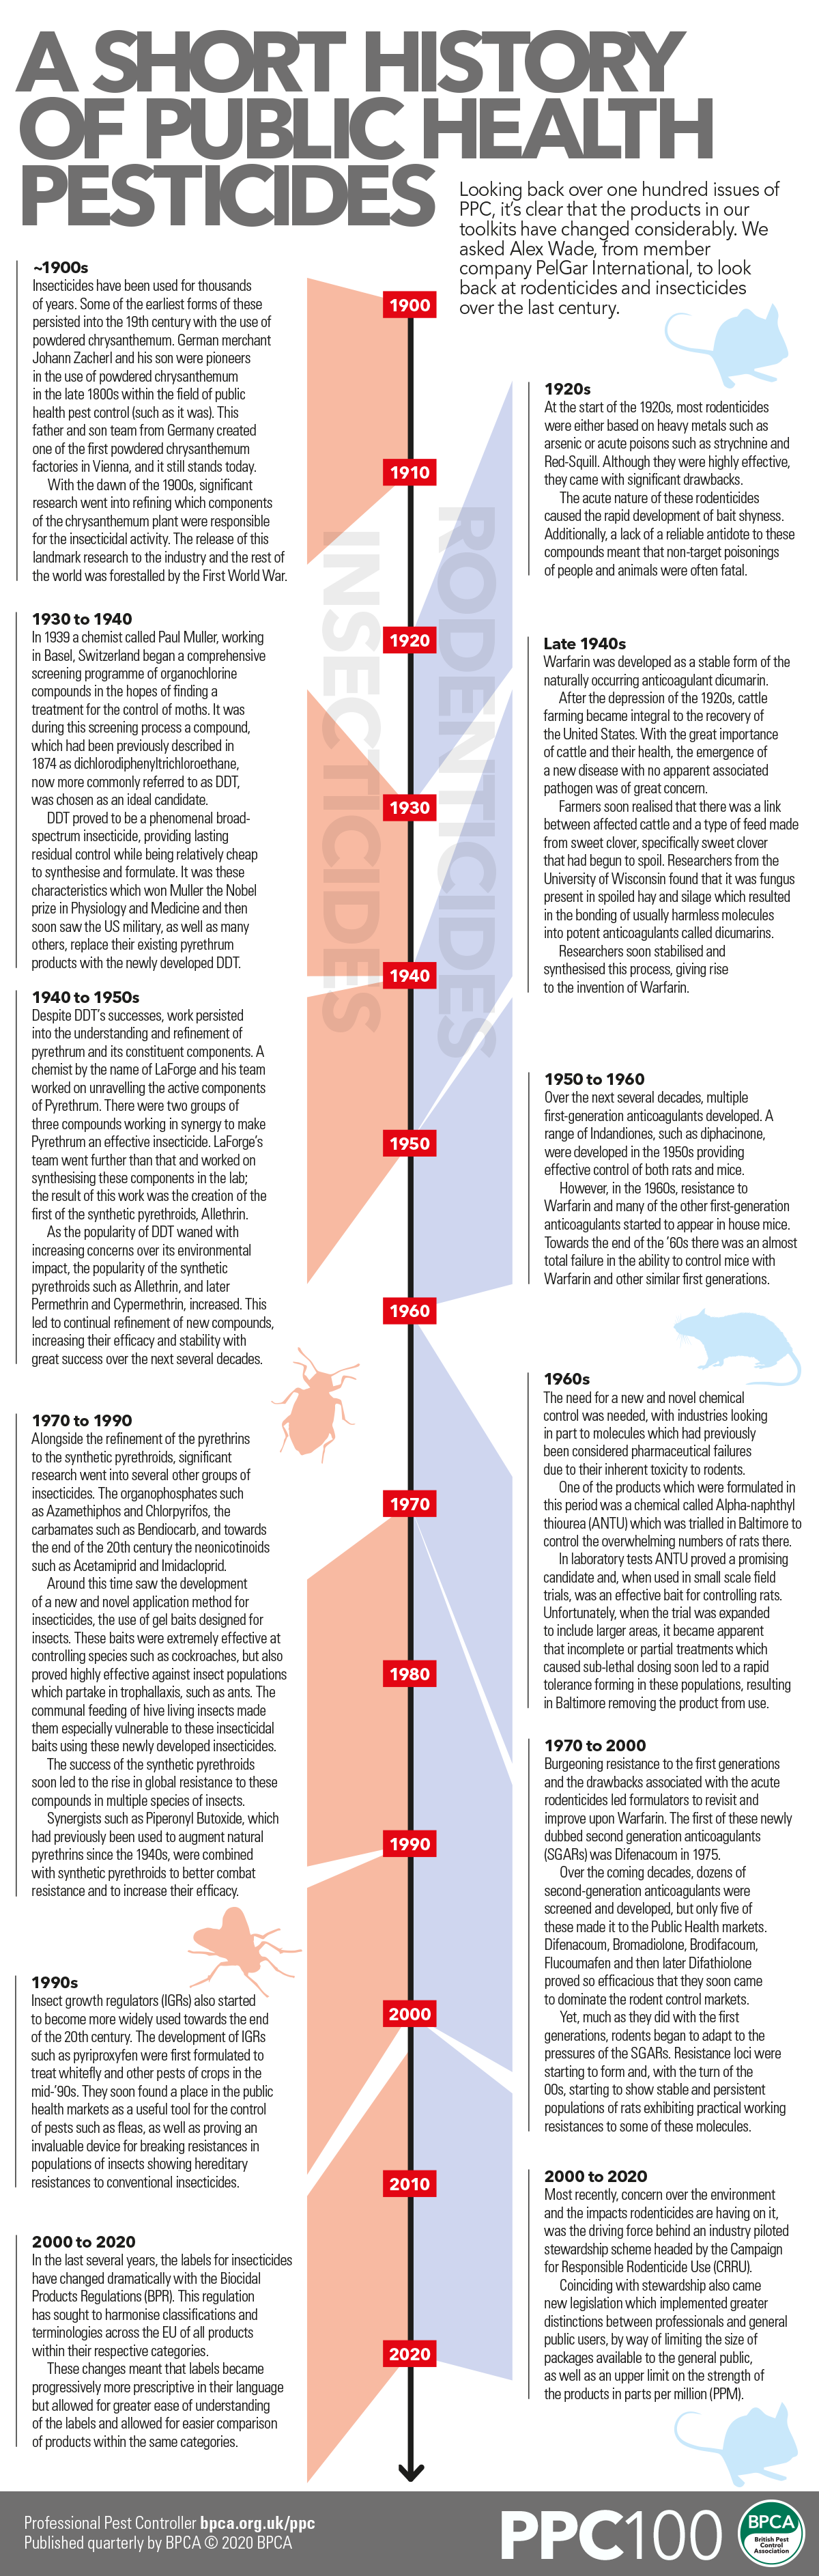 Infographic A short history of public health pesticides PPC magazine British Pest Control Association